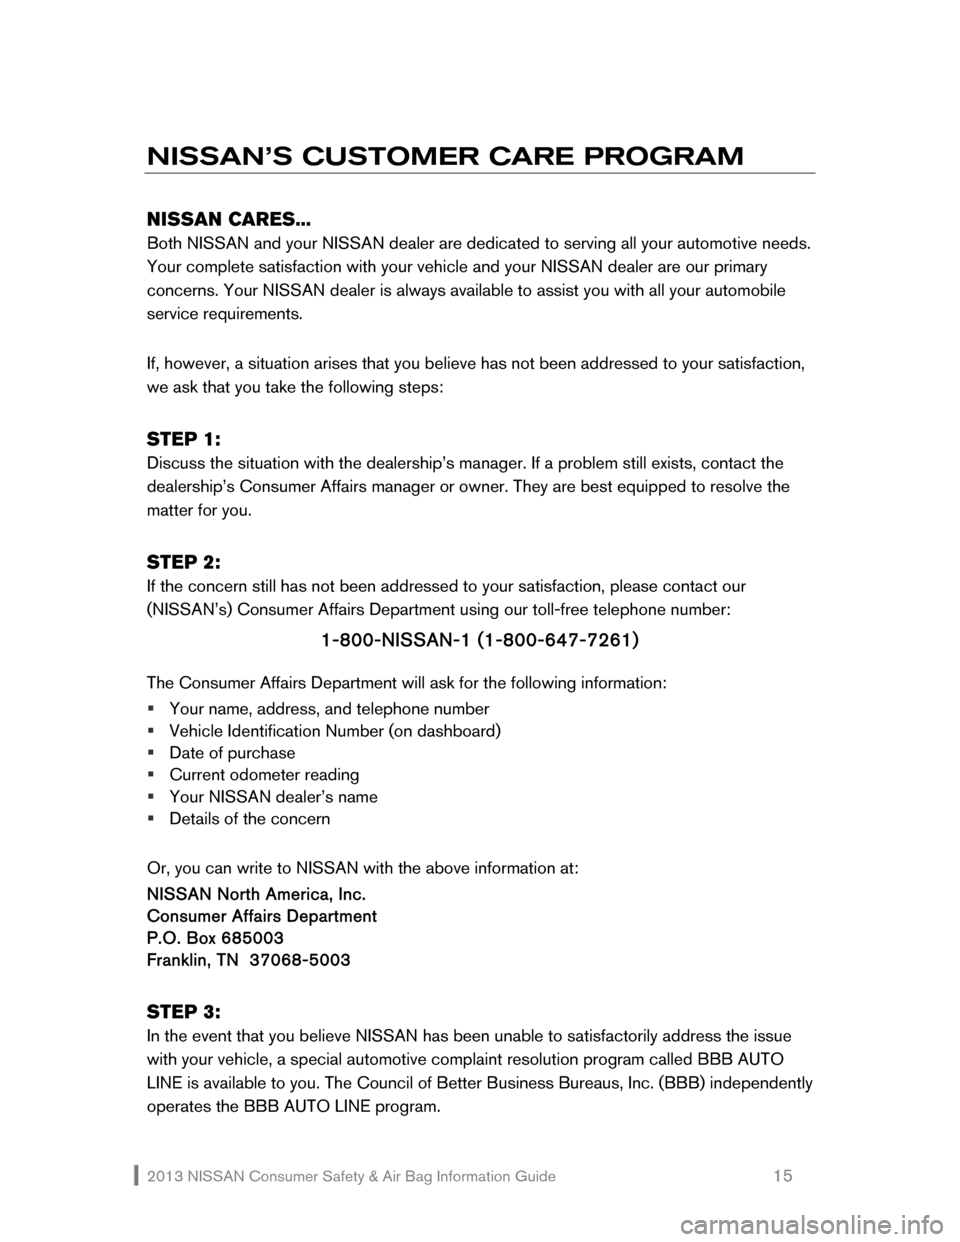 NISSAN ROGUE 2013 2.G Consumer Safety Air Bag Information Guide 2013 NISSAN Consumer Safety & Air Bag Information Guide                                                   15  NISSAN'S CUSTOMER CARE PROGRAM    NISSAN CARES...  Both NISSAN and your NISSAN dealer ar